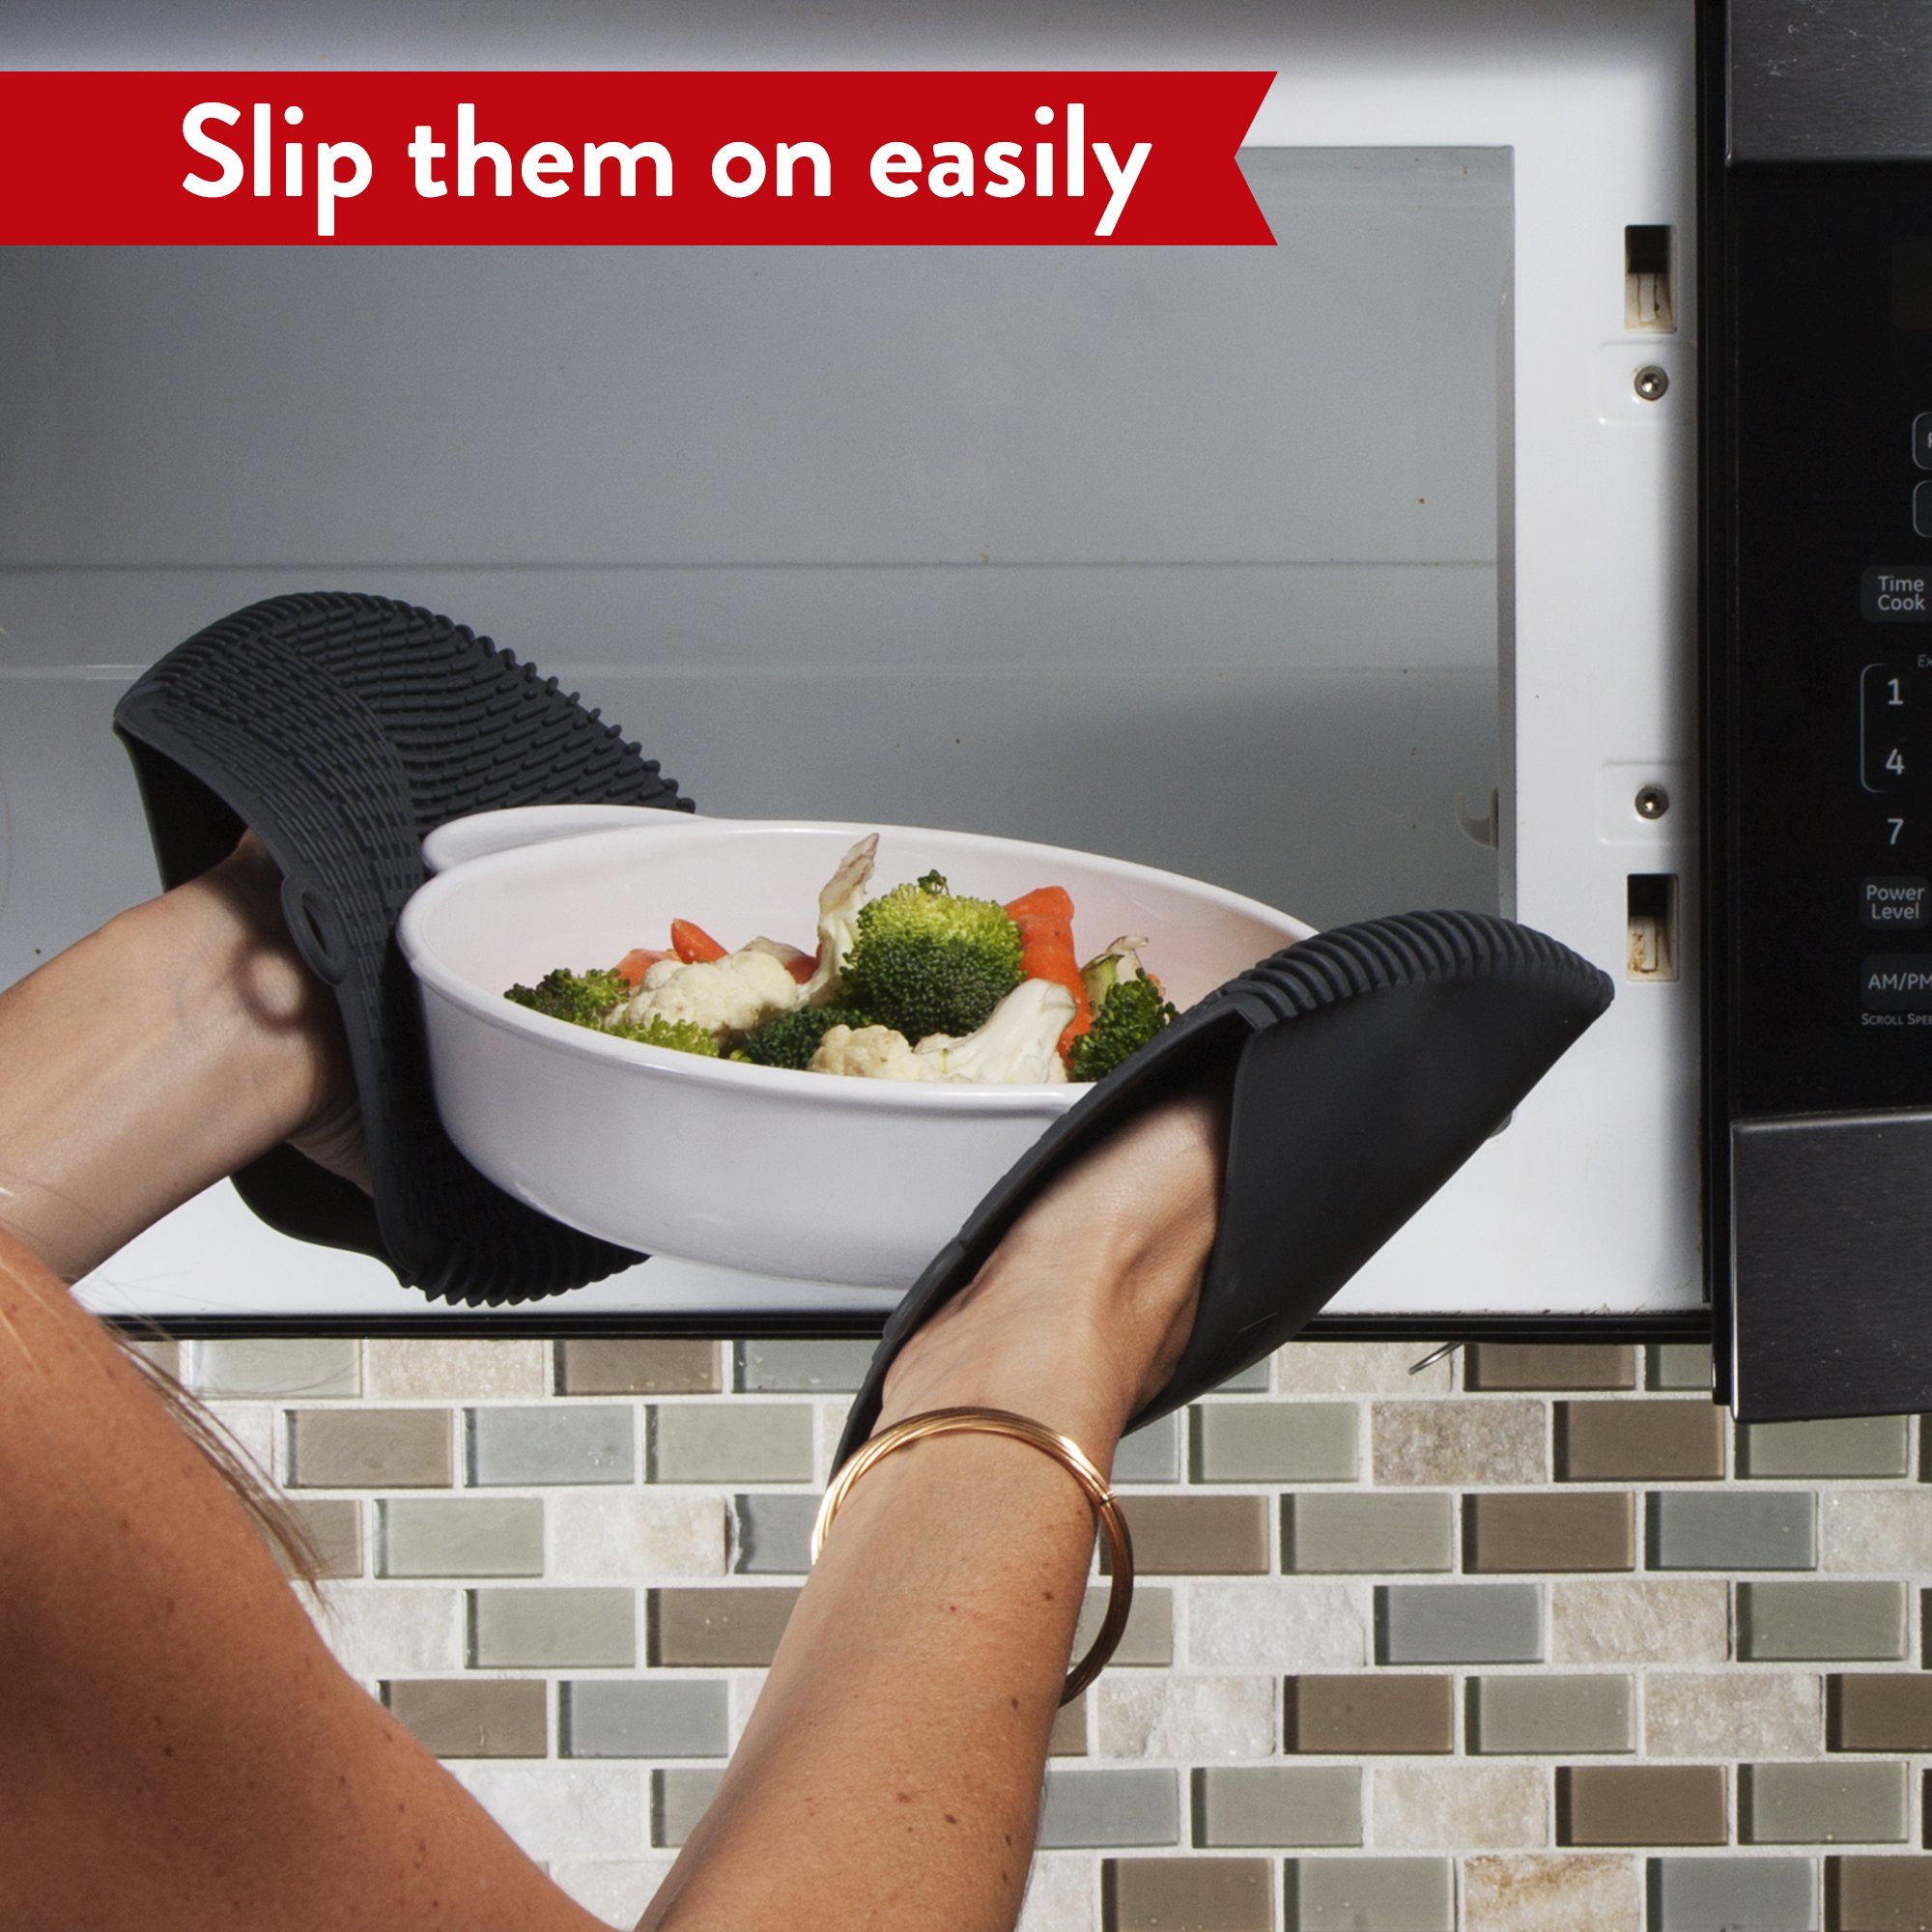 The Ultimate Pot Holders / Oven Mitts | 100% Silicone Mitt is Healthier Than Cotton & Easier to Clean, Won't Grow Mold or Bacteria | Unique Design Makes it Safe, Non-Slip & Flexible (Gray, Set of 2) by Love This Kitchen (Image #6)